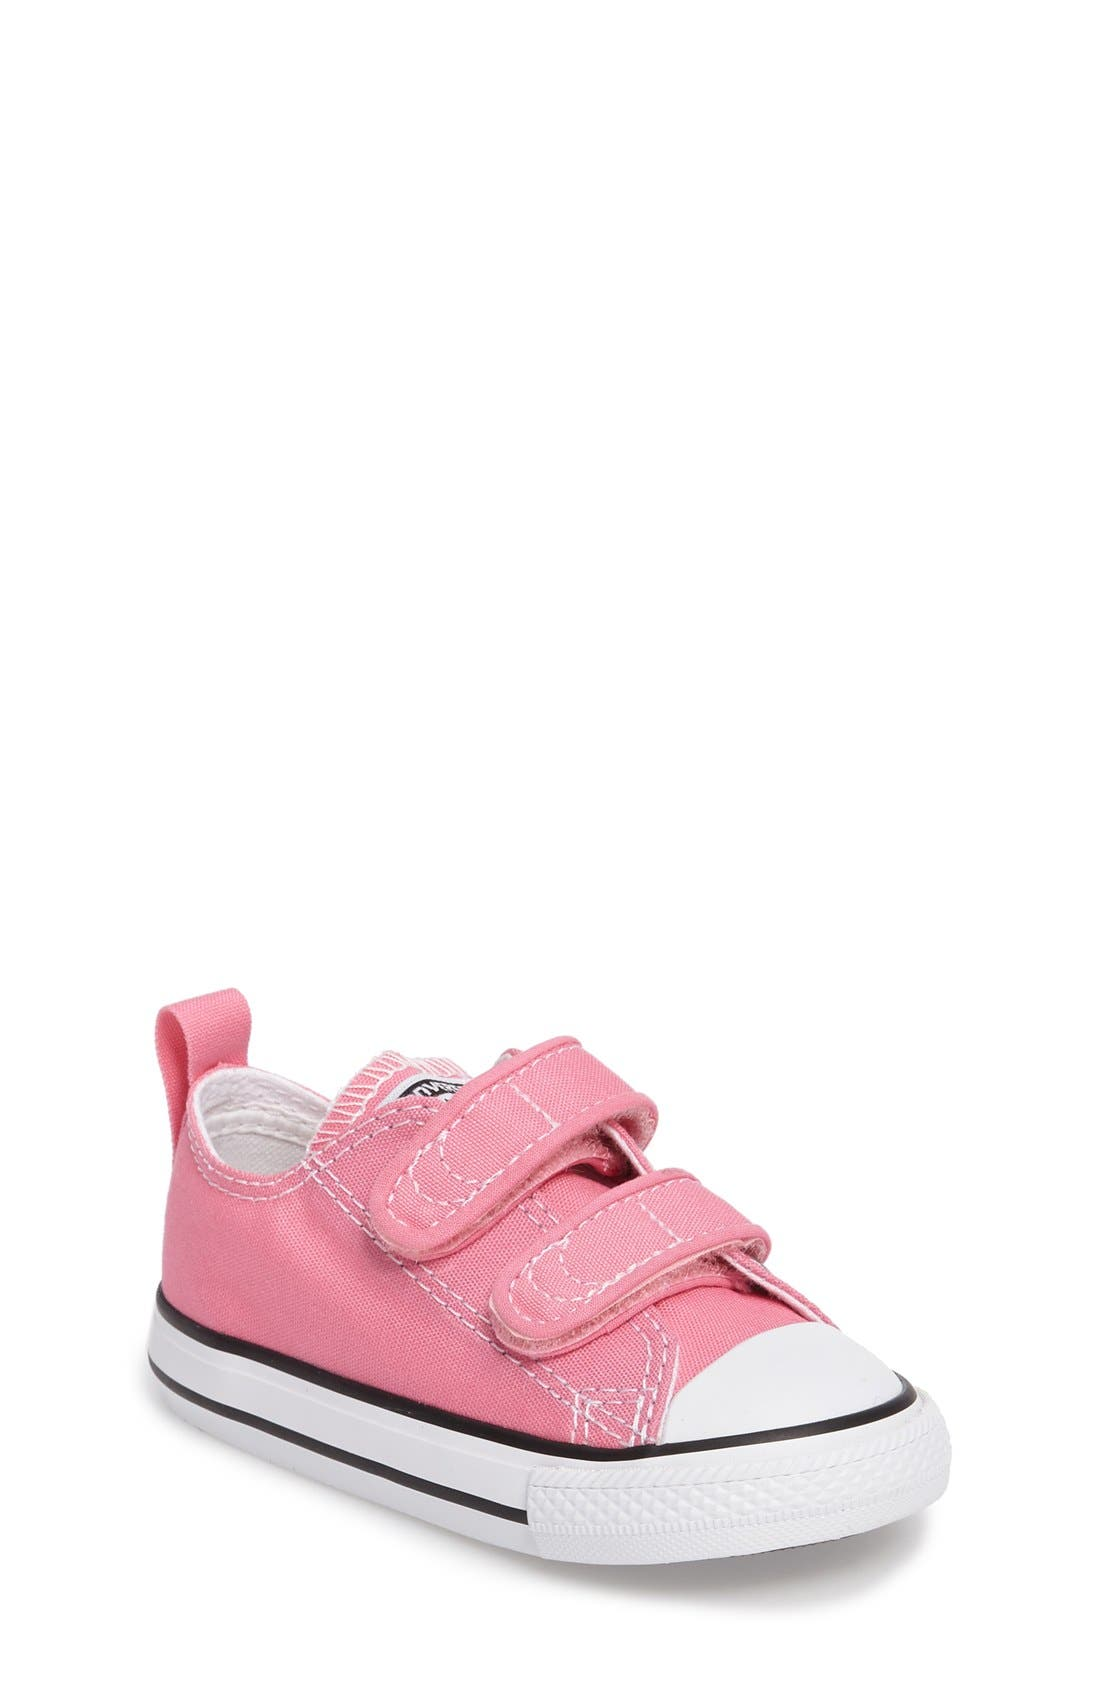 on sale d4b56 6d0cc Baby, Walker   Toddler Shoes   Nordstrom